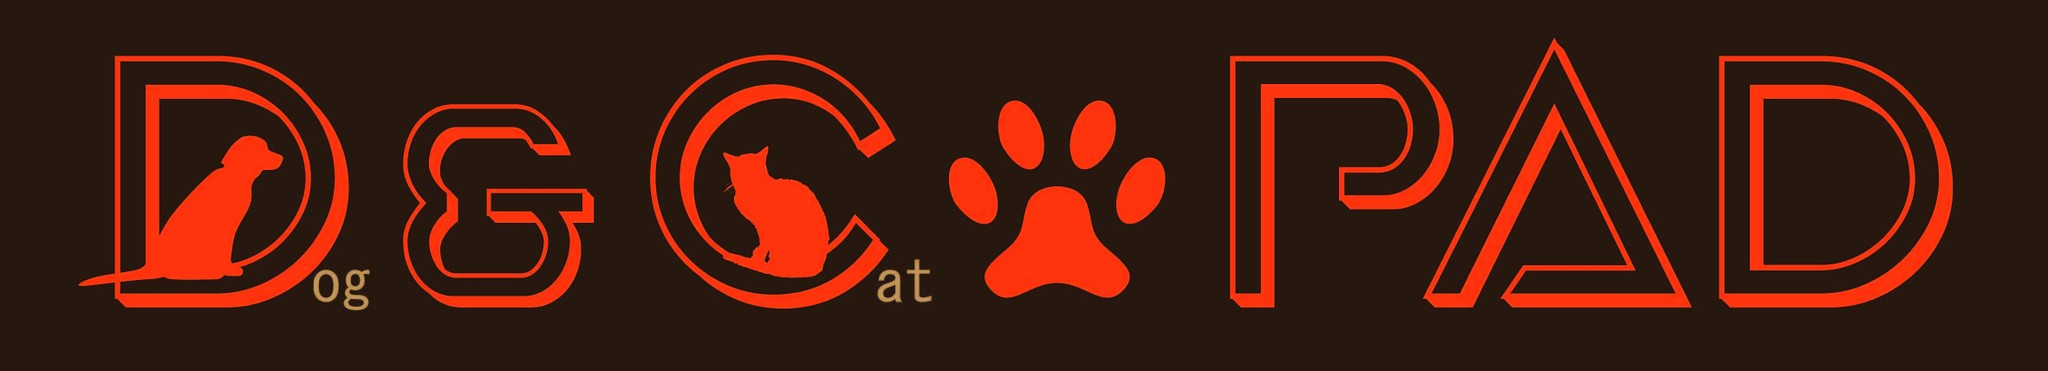 Dogs & Cats Pad